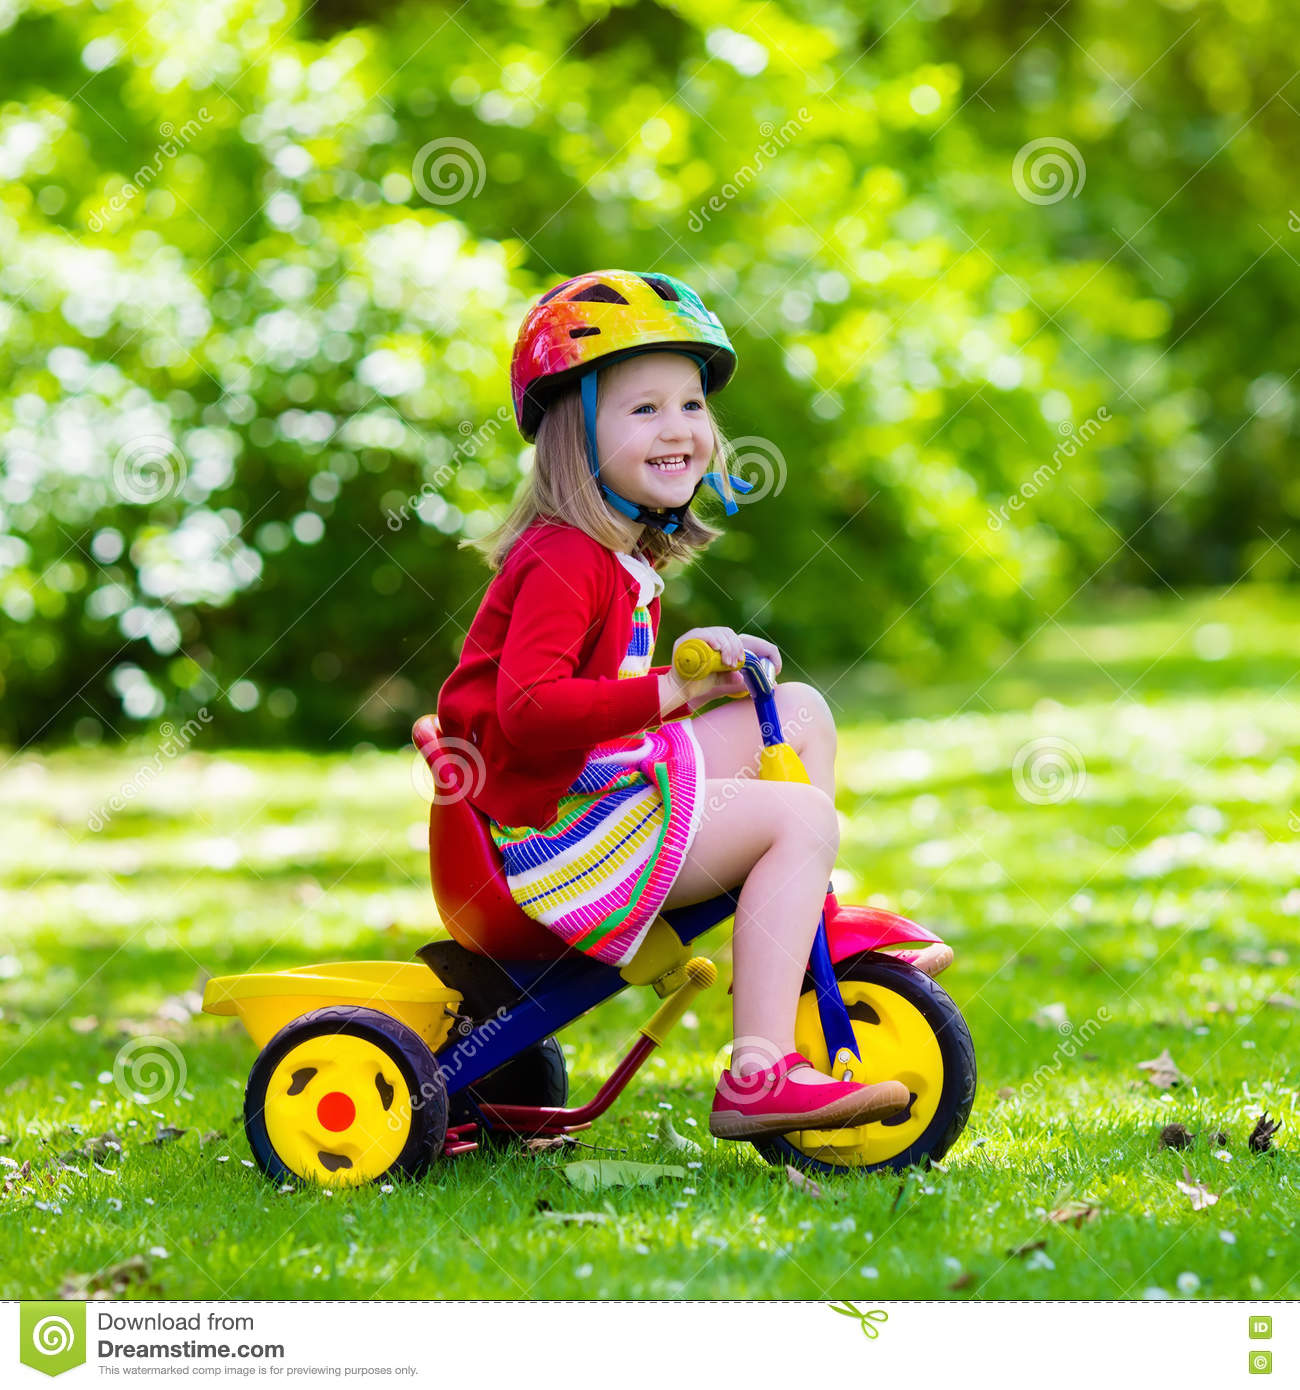 696a9baaec4 Cute girl wearing safety helmet riding her tricycle in sunny summer park.  Kids ride bicycle. First bike for little child. Active toddler kid playing  and ...